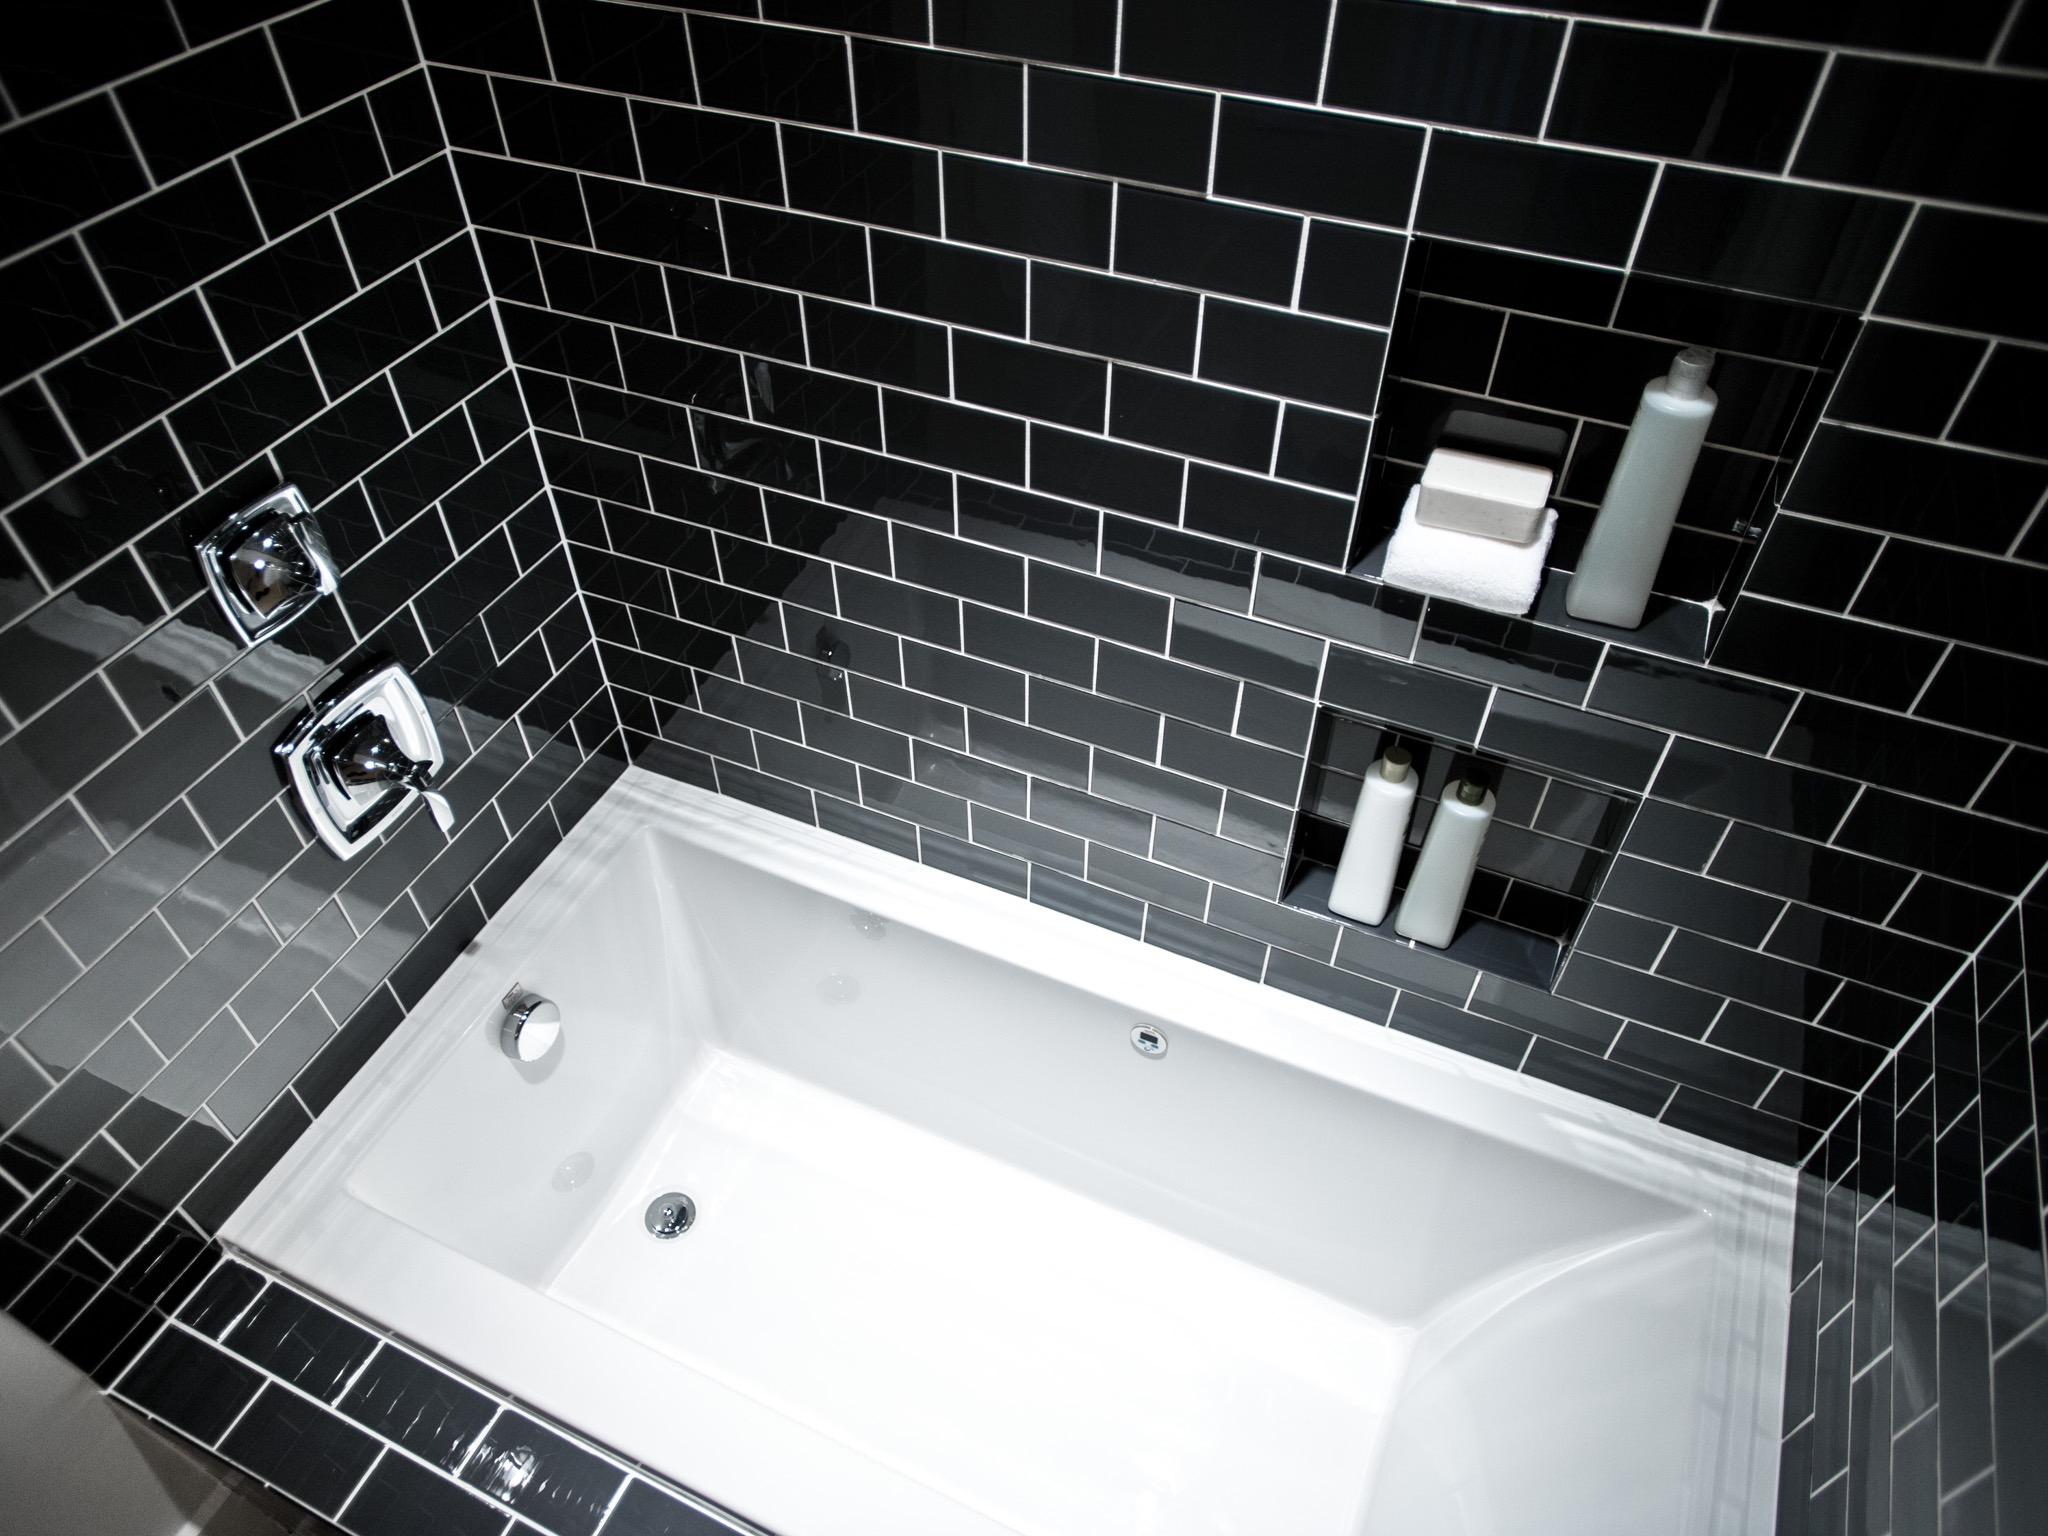 Black And White Modern Bathroom With Combination Tub And Shower (Image 5 of 19)